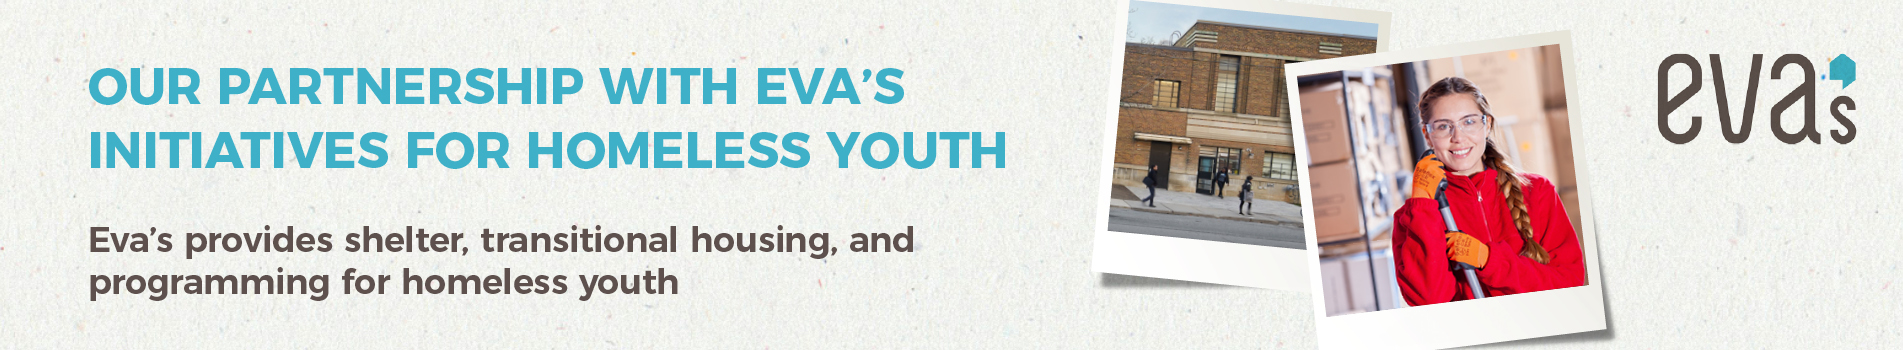 Konica Minolta Announces Partnership with Eva's Initiatives for Homeless Youth